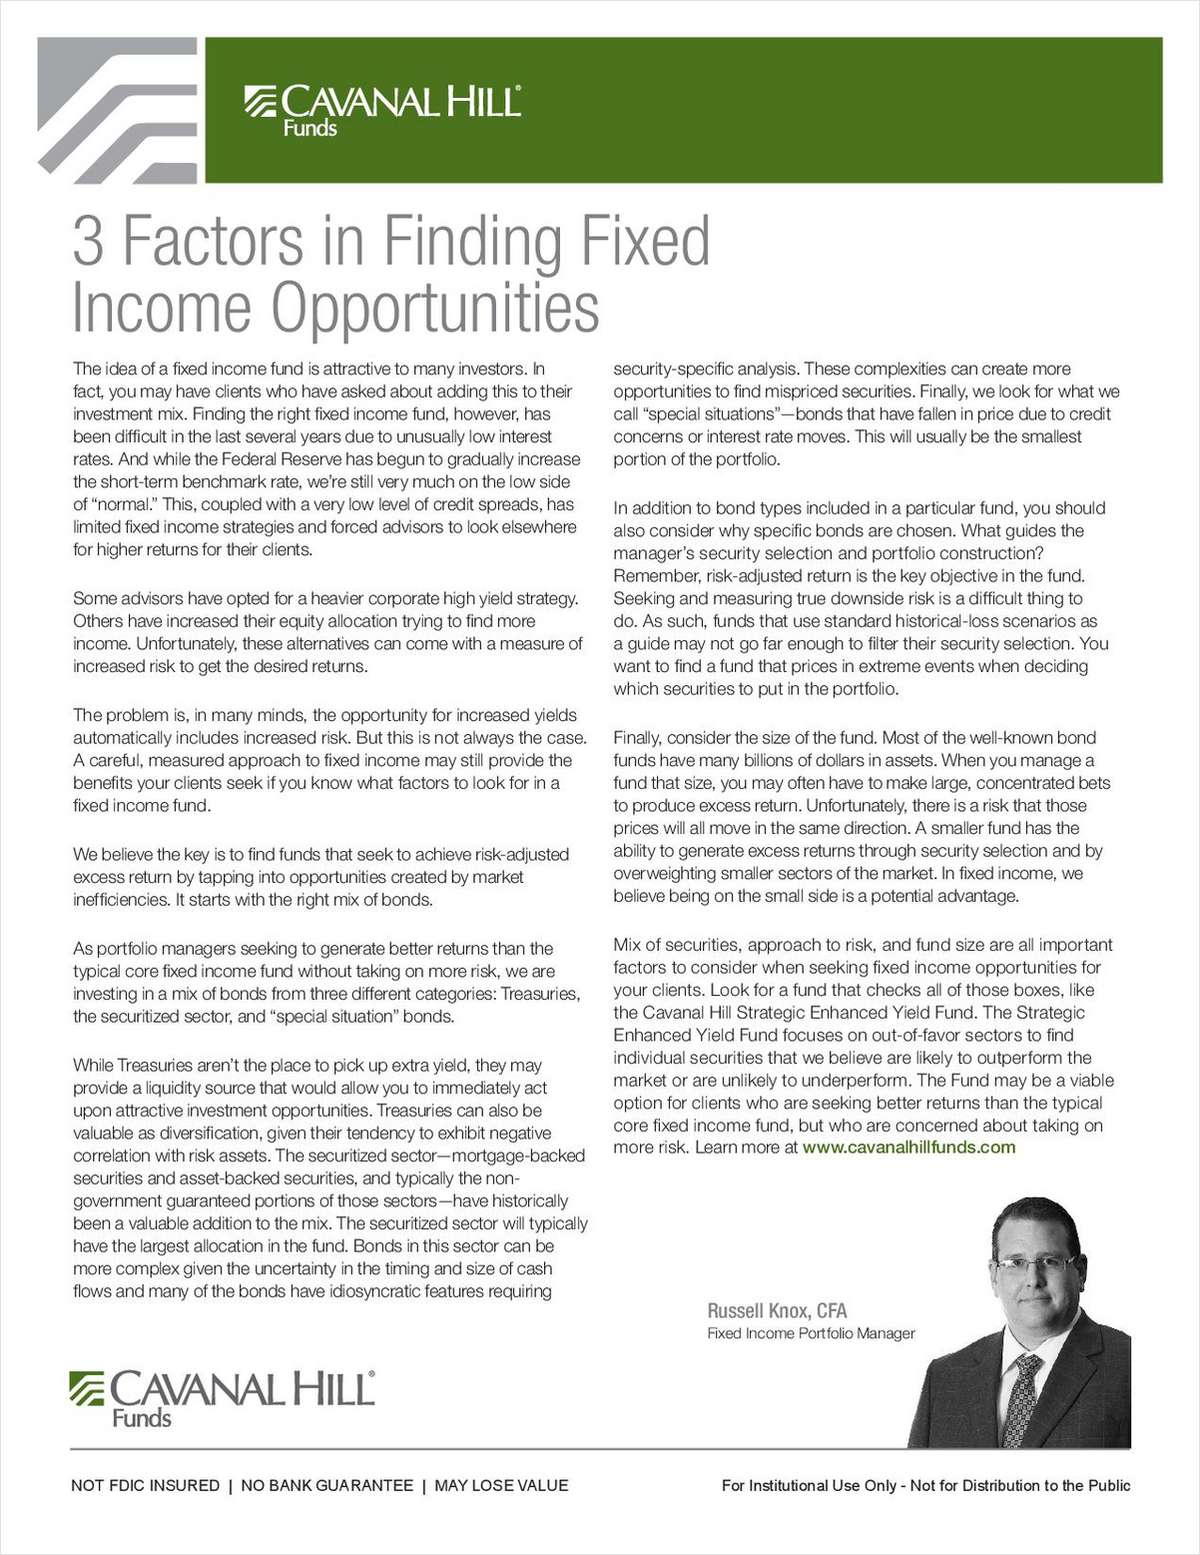 3 Factors in Finding Fixed Income Opportunities